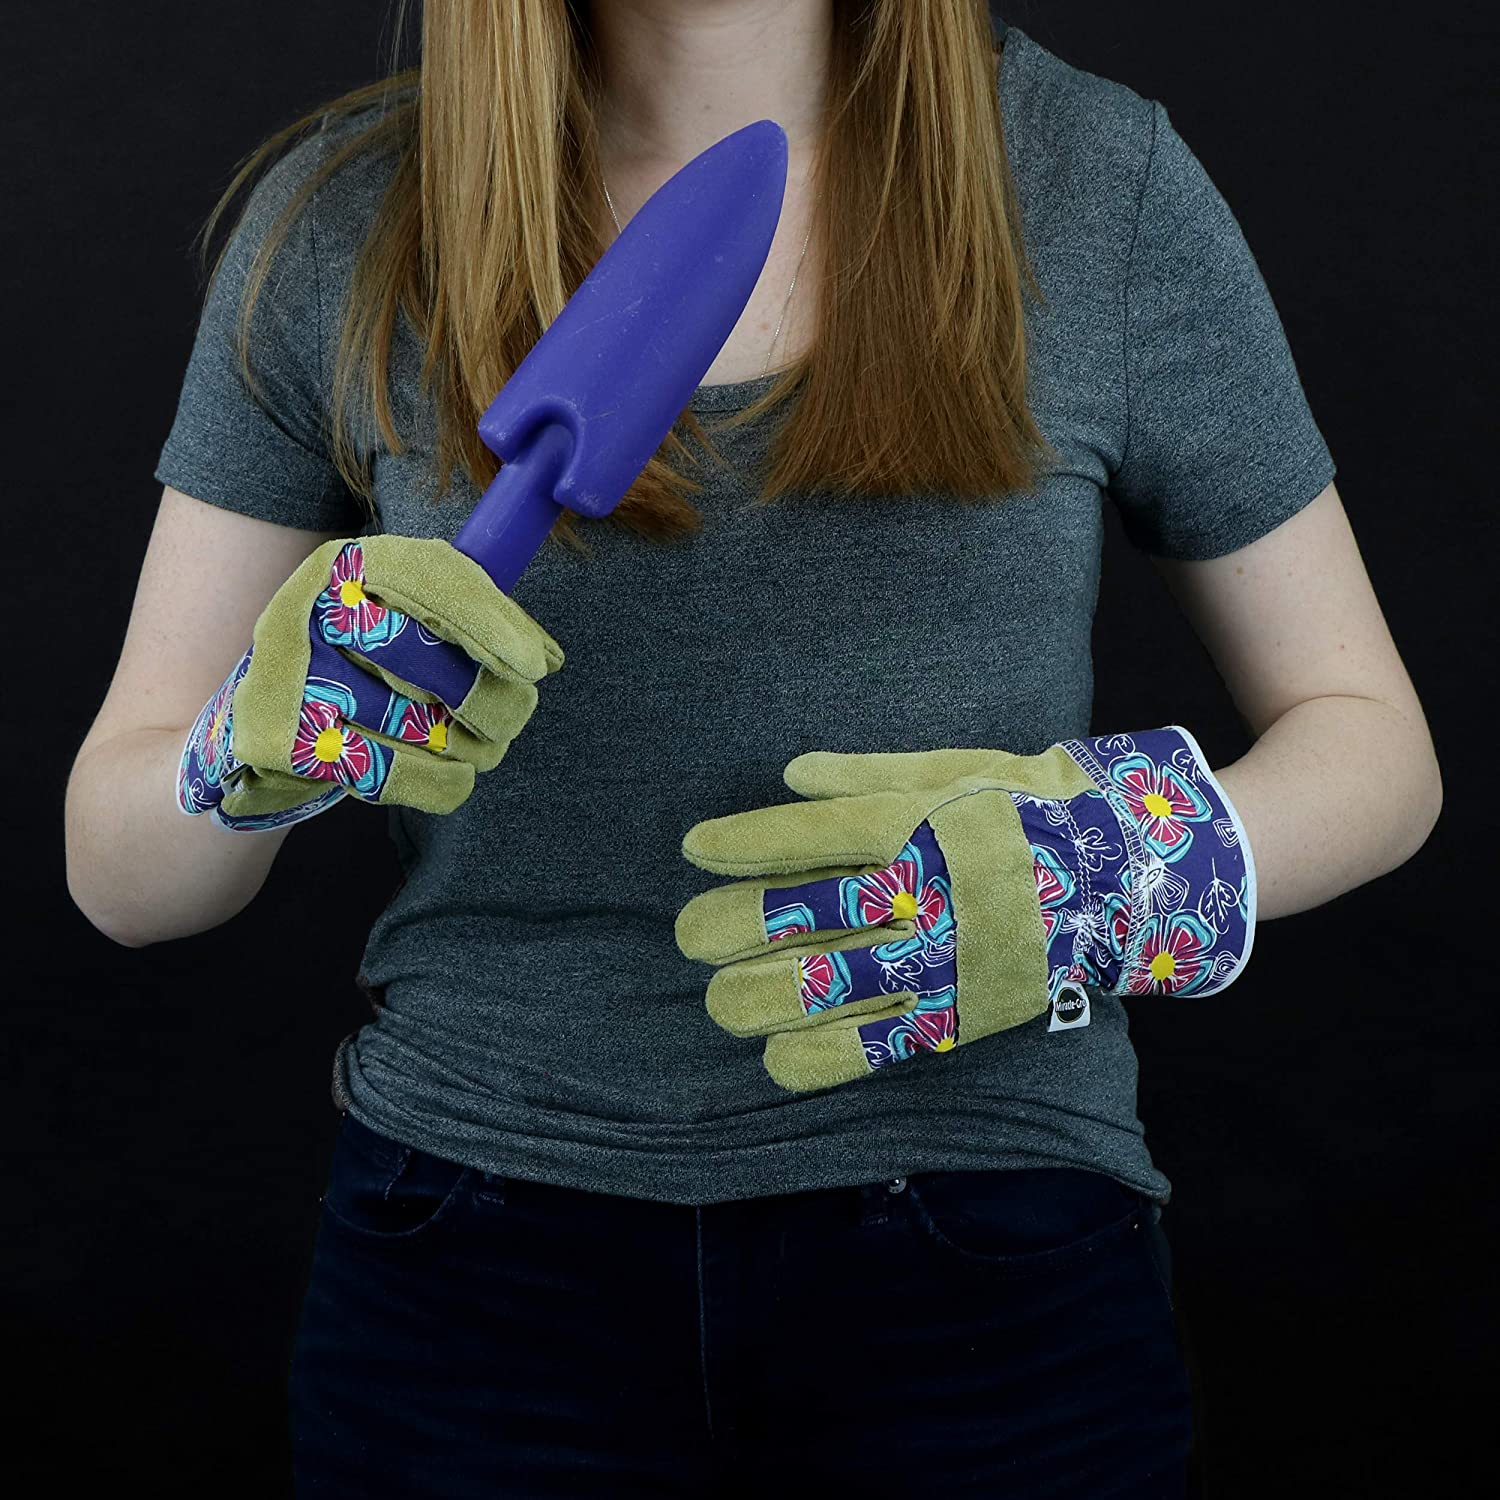 Womens Small//Medium 1 Pair Women/'s Small//Medium 1 Pair Westchester Holdings MG23011//WSM West Chester Miracle-Gro MG23011 Split Cowhide Leather Landscaping Work Gloves Purple//Floral Print